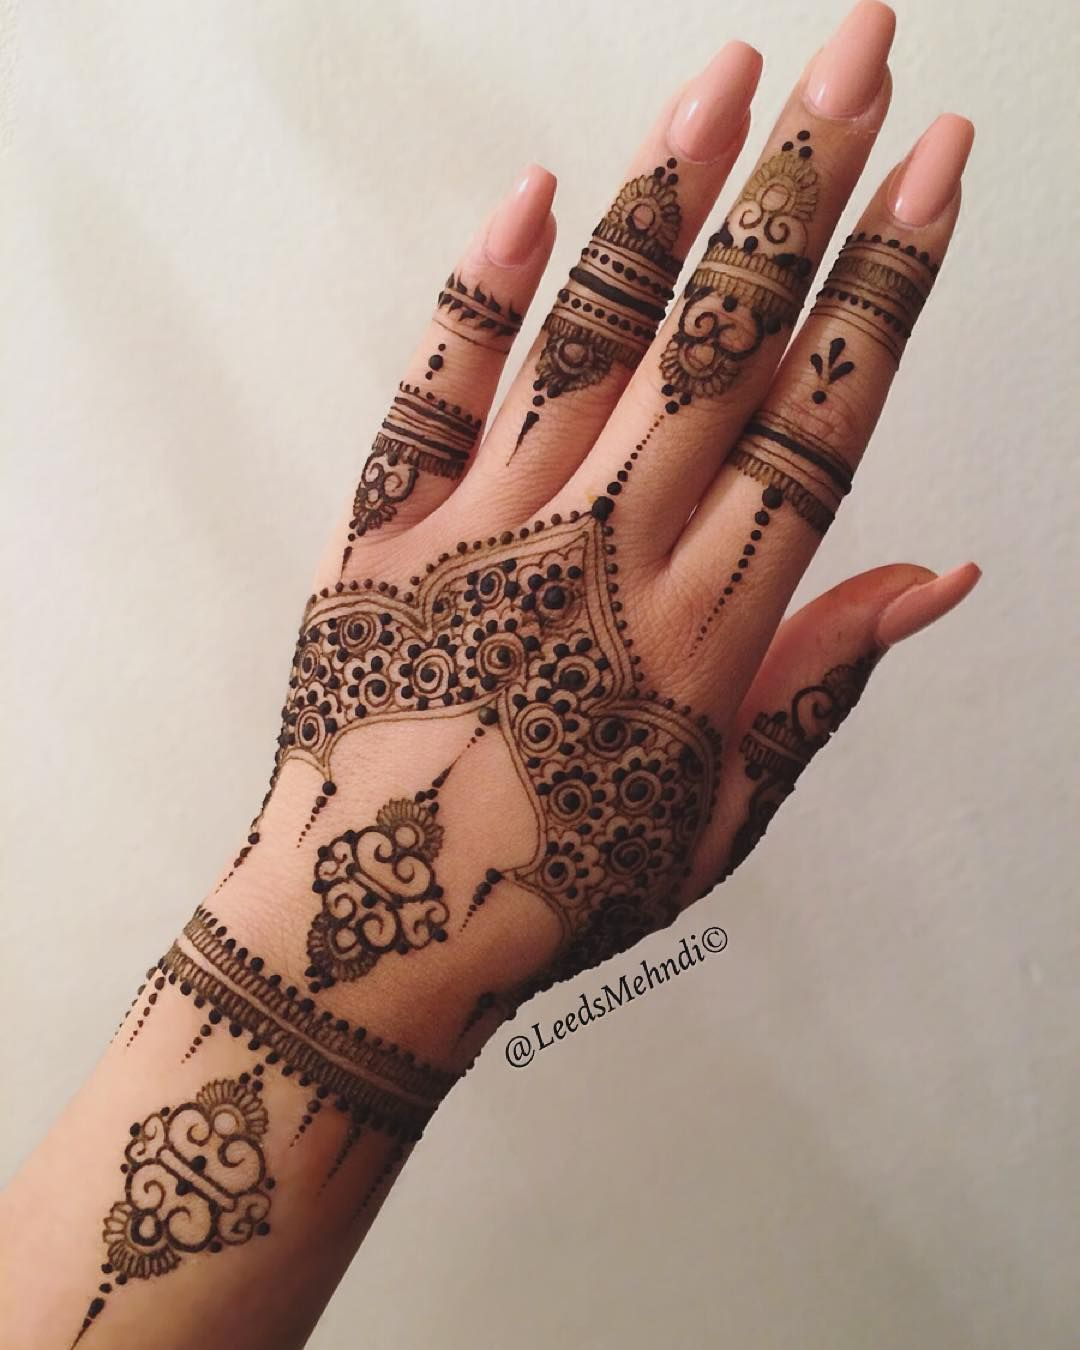 Henna Mehndi Tattoo Designs Idea For Wrist: Best Mehandi Designs For Eid